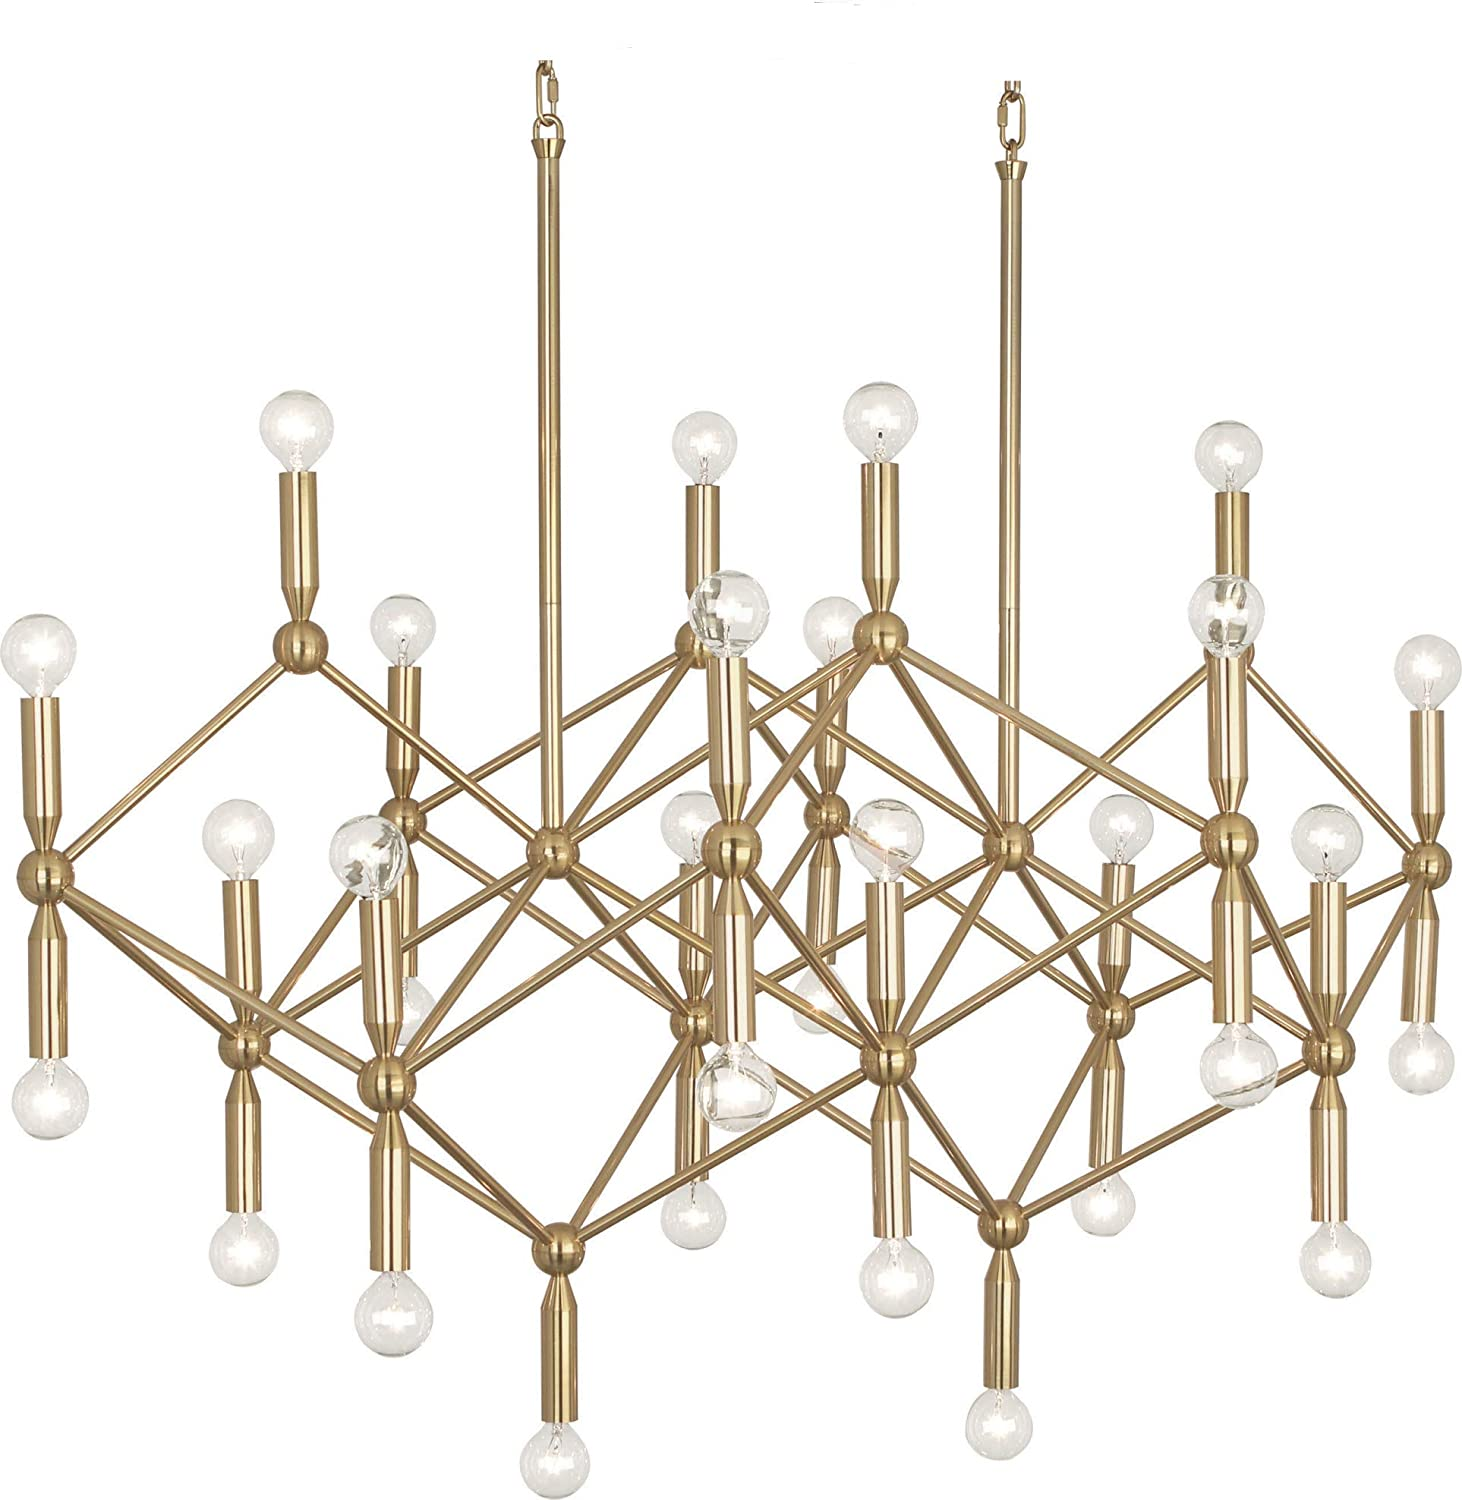 Robert Abbey 399 Jonathan Adler Milano - Thirty Light Chandelier, Polished Brass Finish Finish